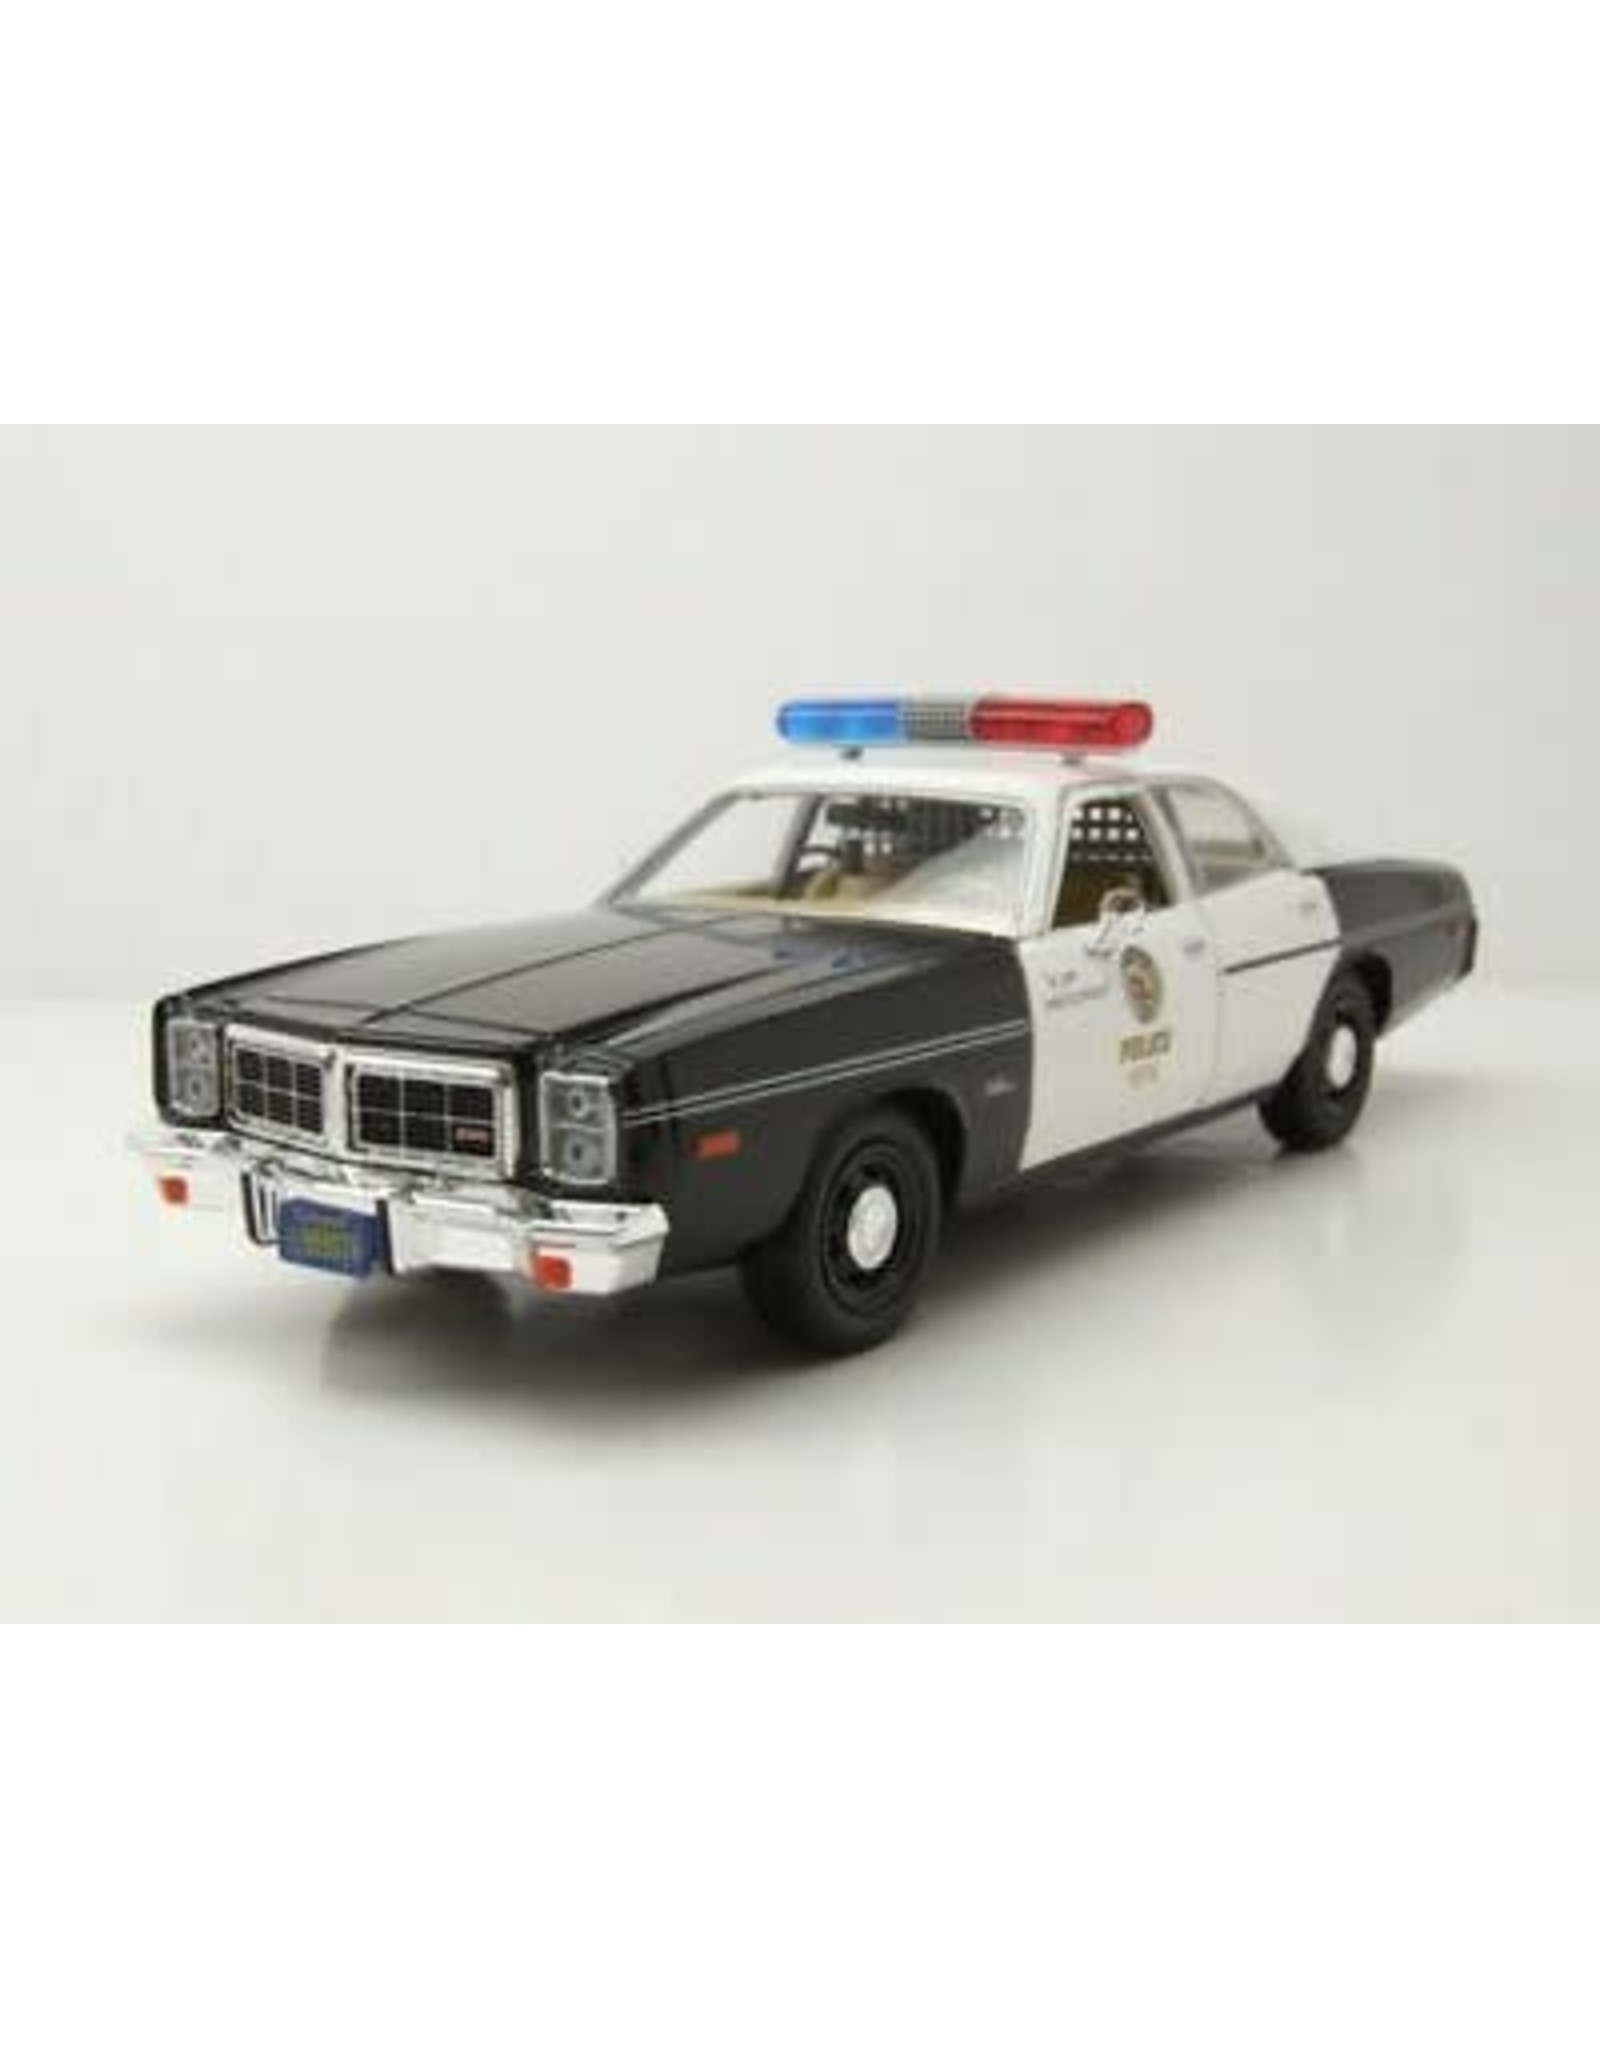 1977 Dodge Monaco Metropolitan Police Black And White The Terminator 1984 Movie 1 24 Diecast Model Car By Greenlight Big Bang Toys